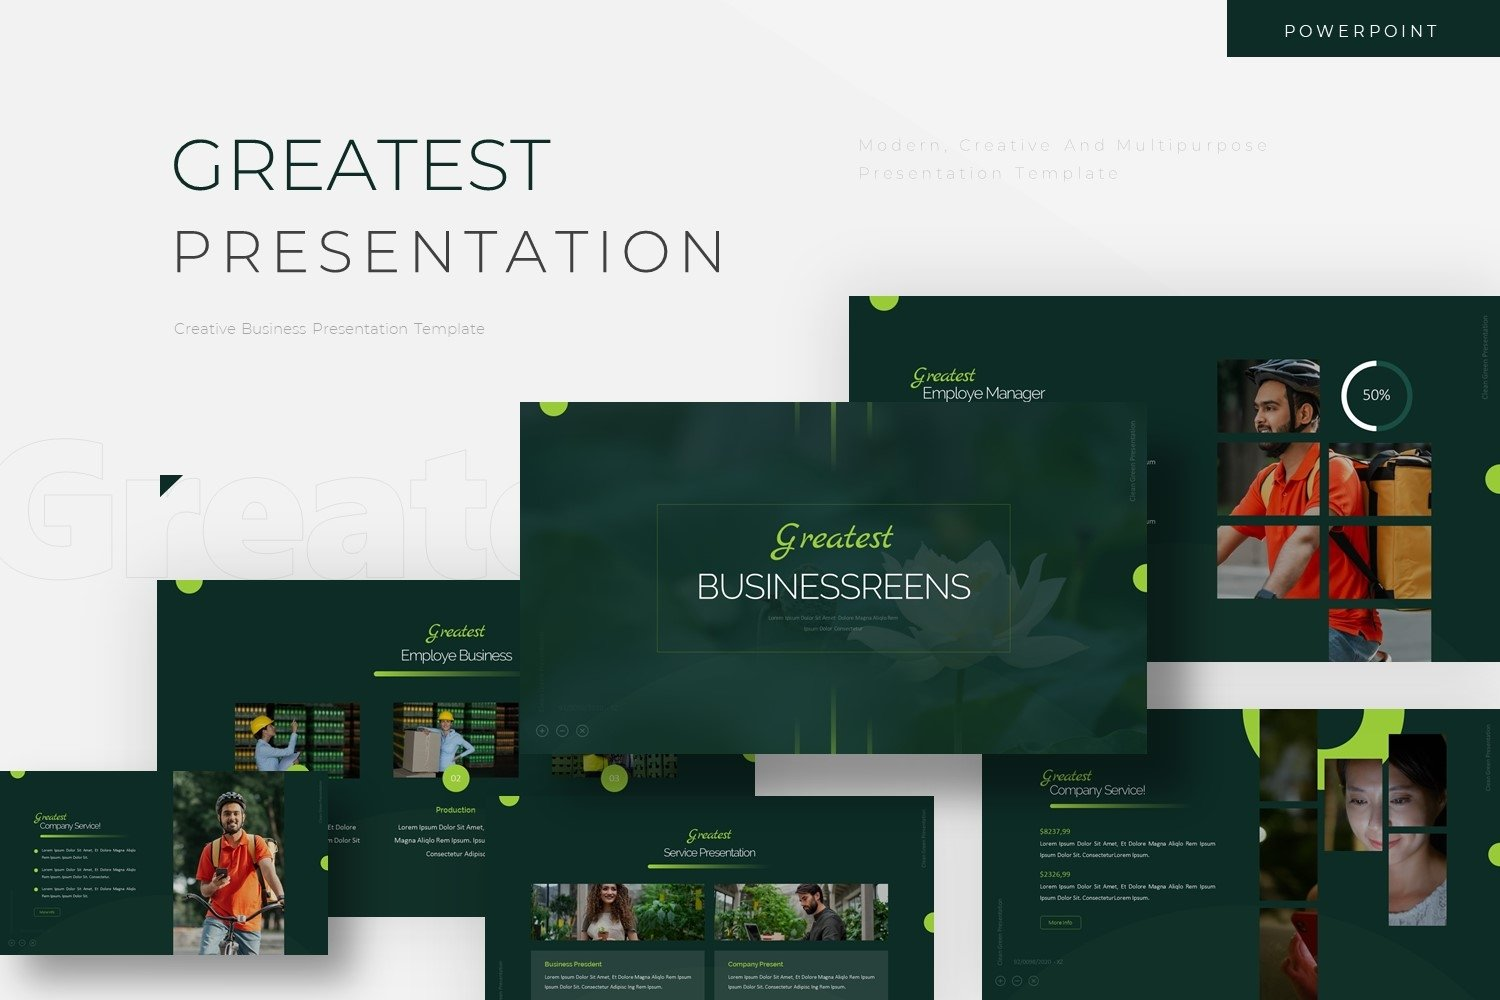 Greatest - Powerpoint Template example image 1